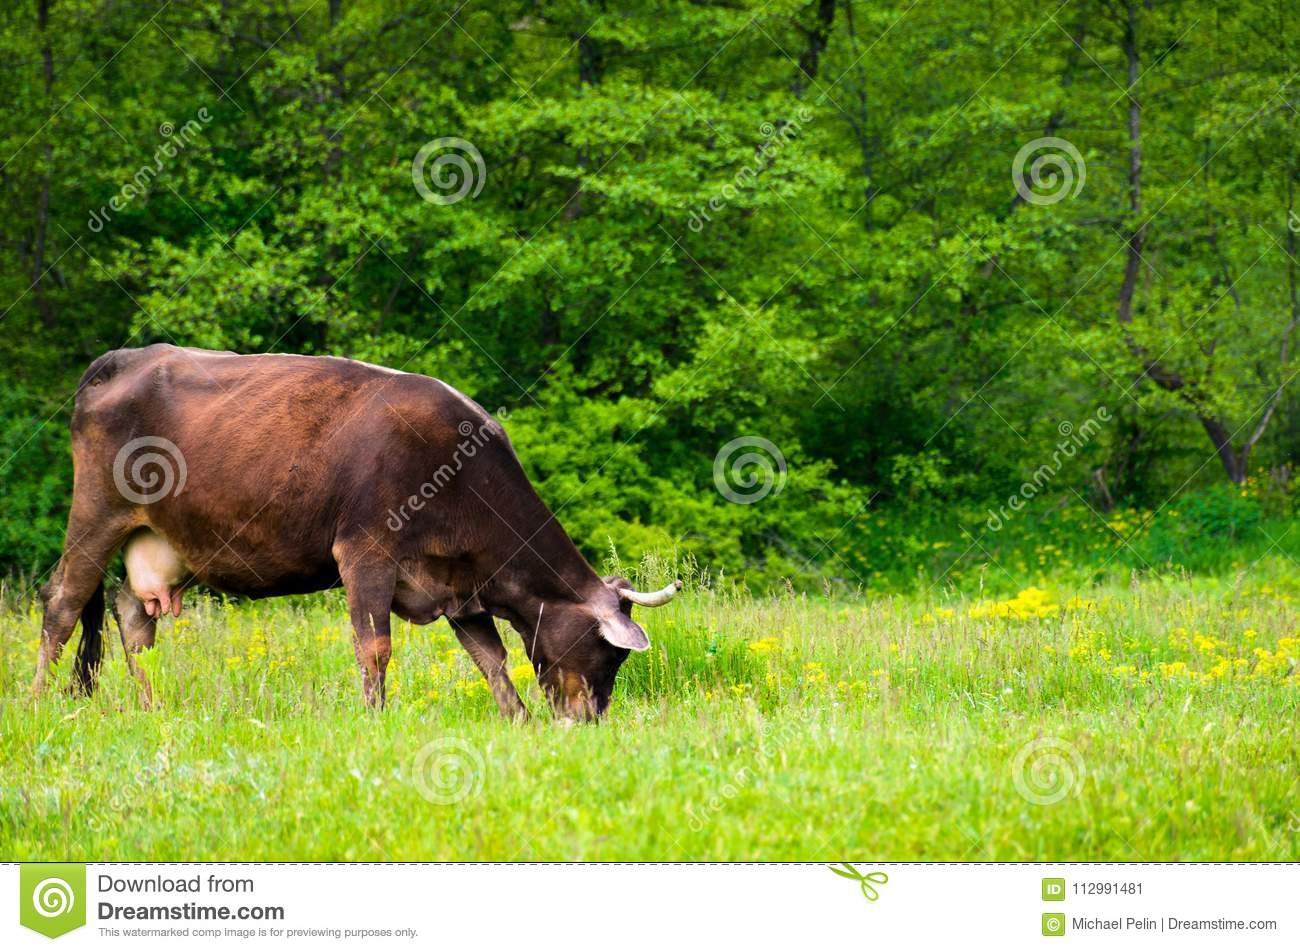 Cow grazing on the grassy meadow near the forest